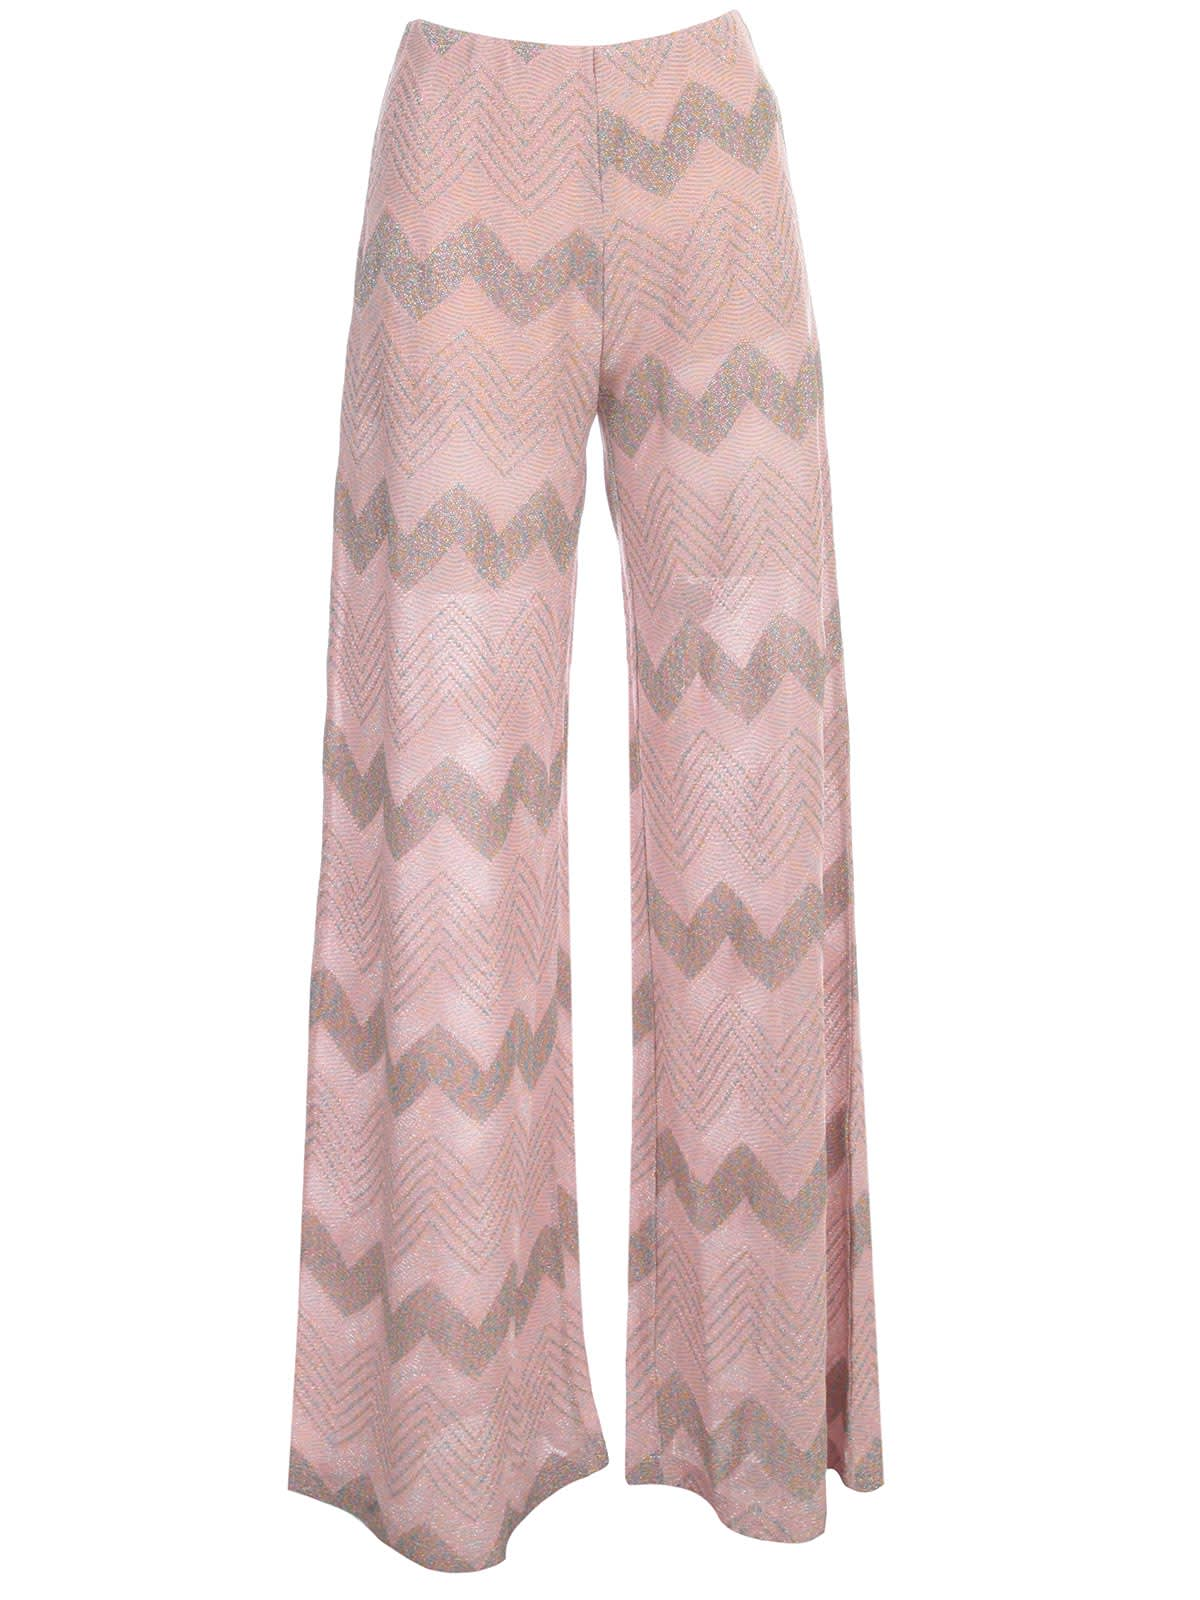 M Missoni Pants Flared Zig Zag Lurex